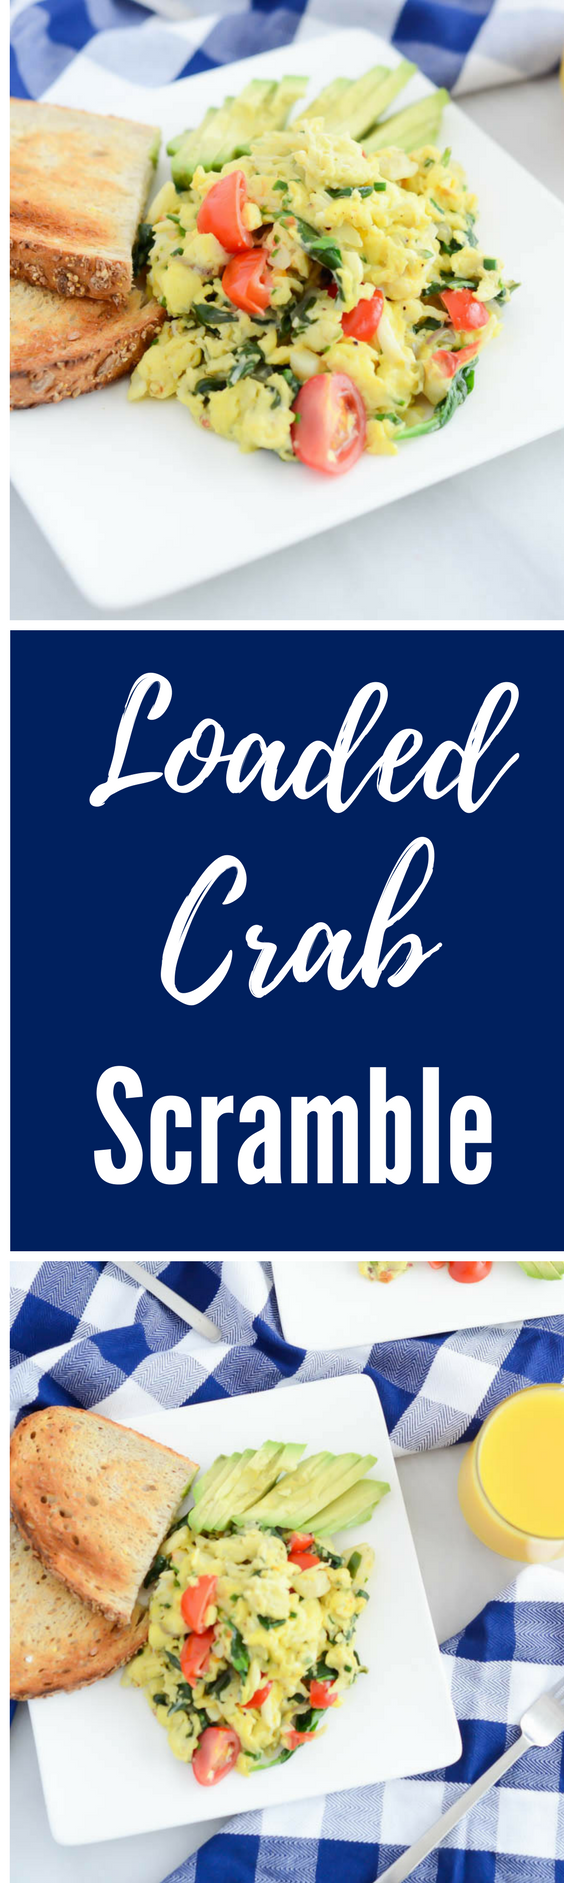 Loaded Crab Scramble | CaliGirlCooking.com